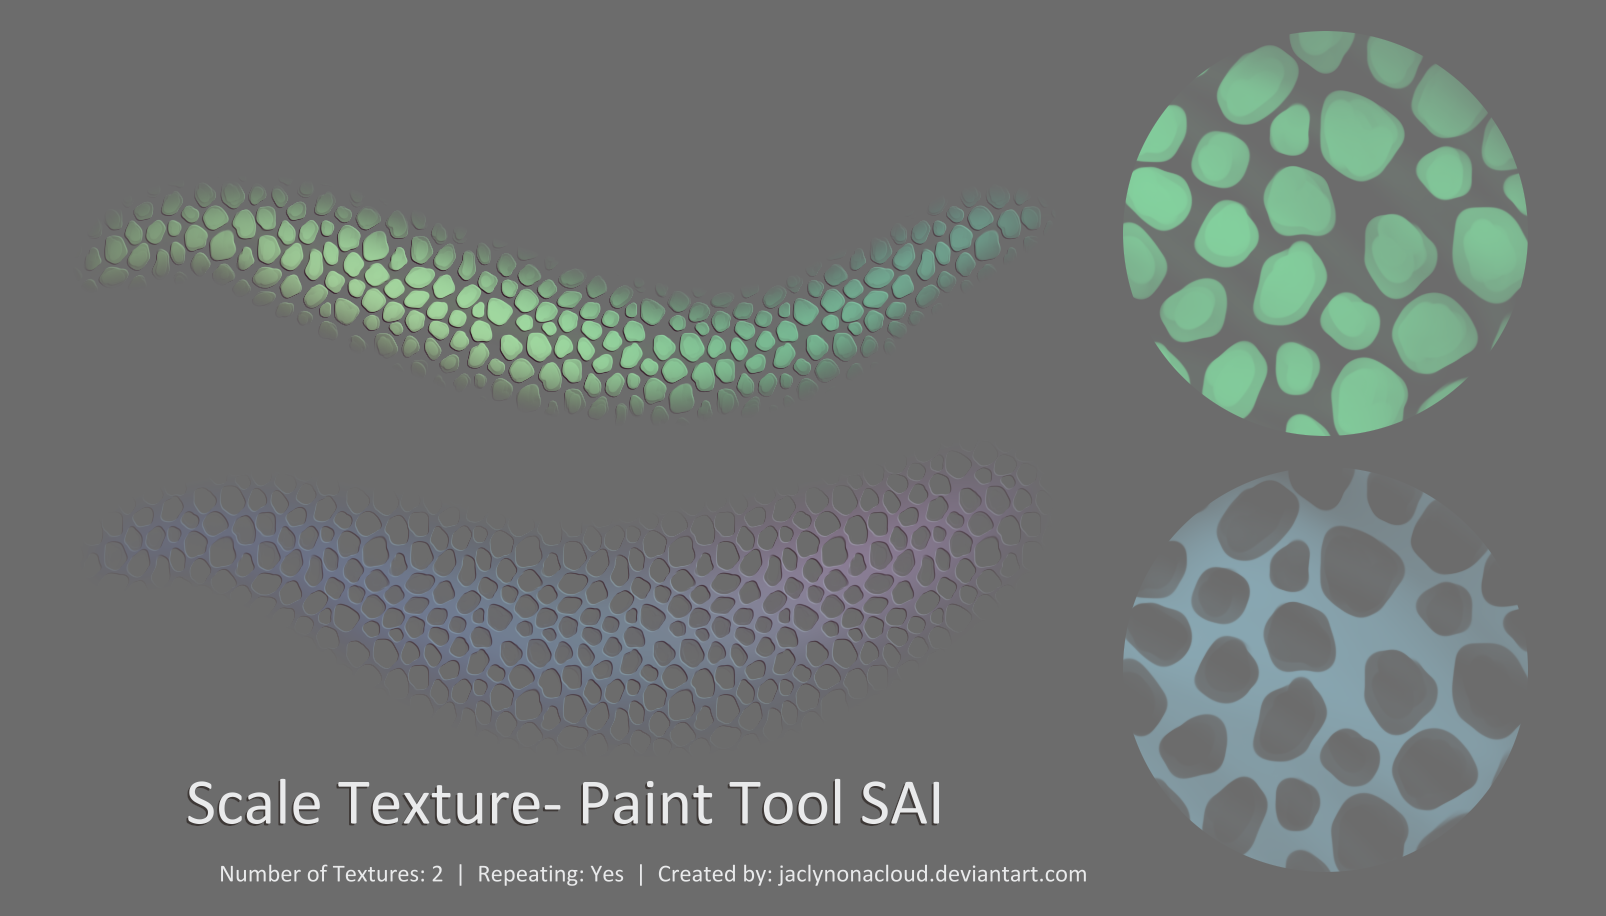 Scale Texture for Paint Tool SAI